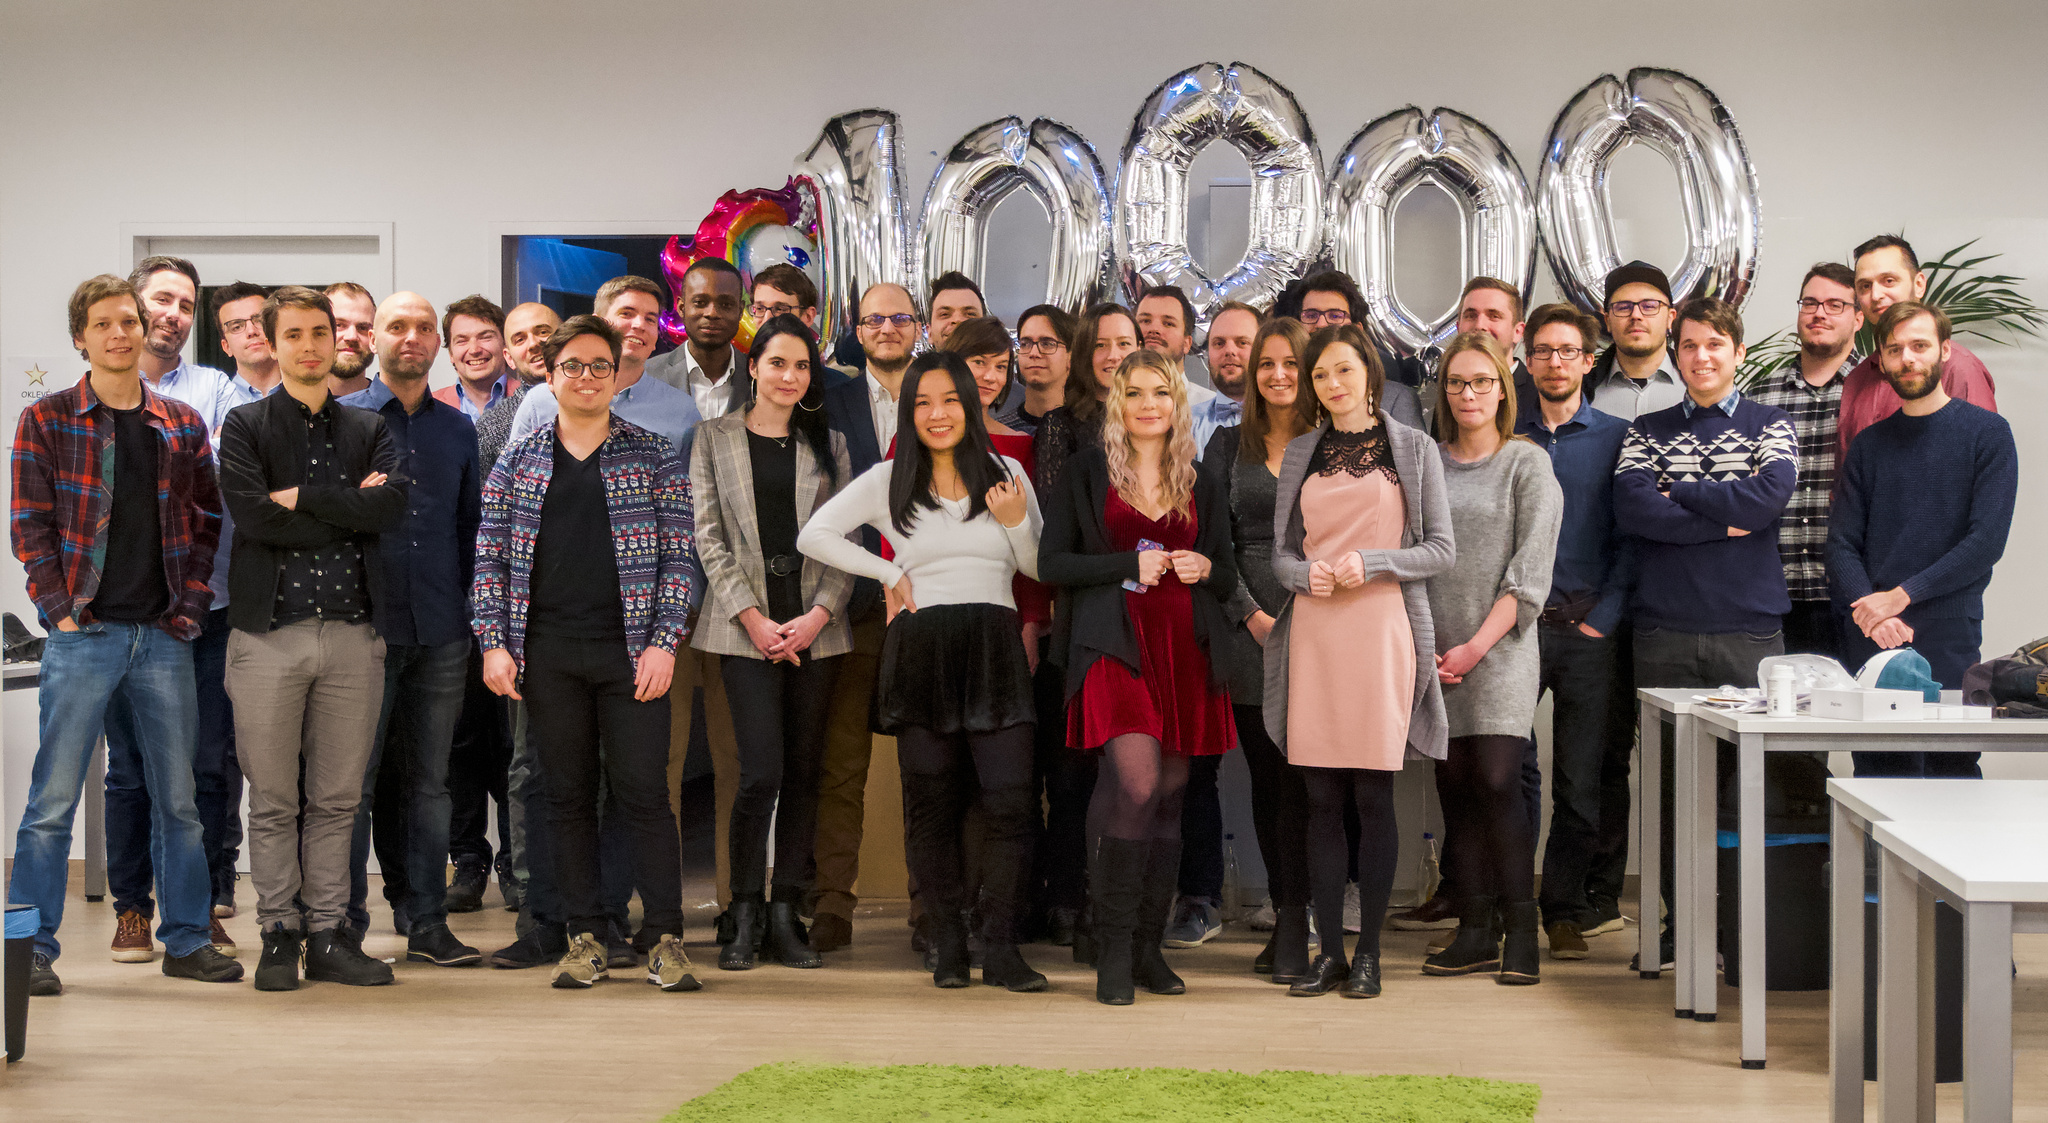 The Shapr 3D team celebrates 10,000 designers using their app.